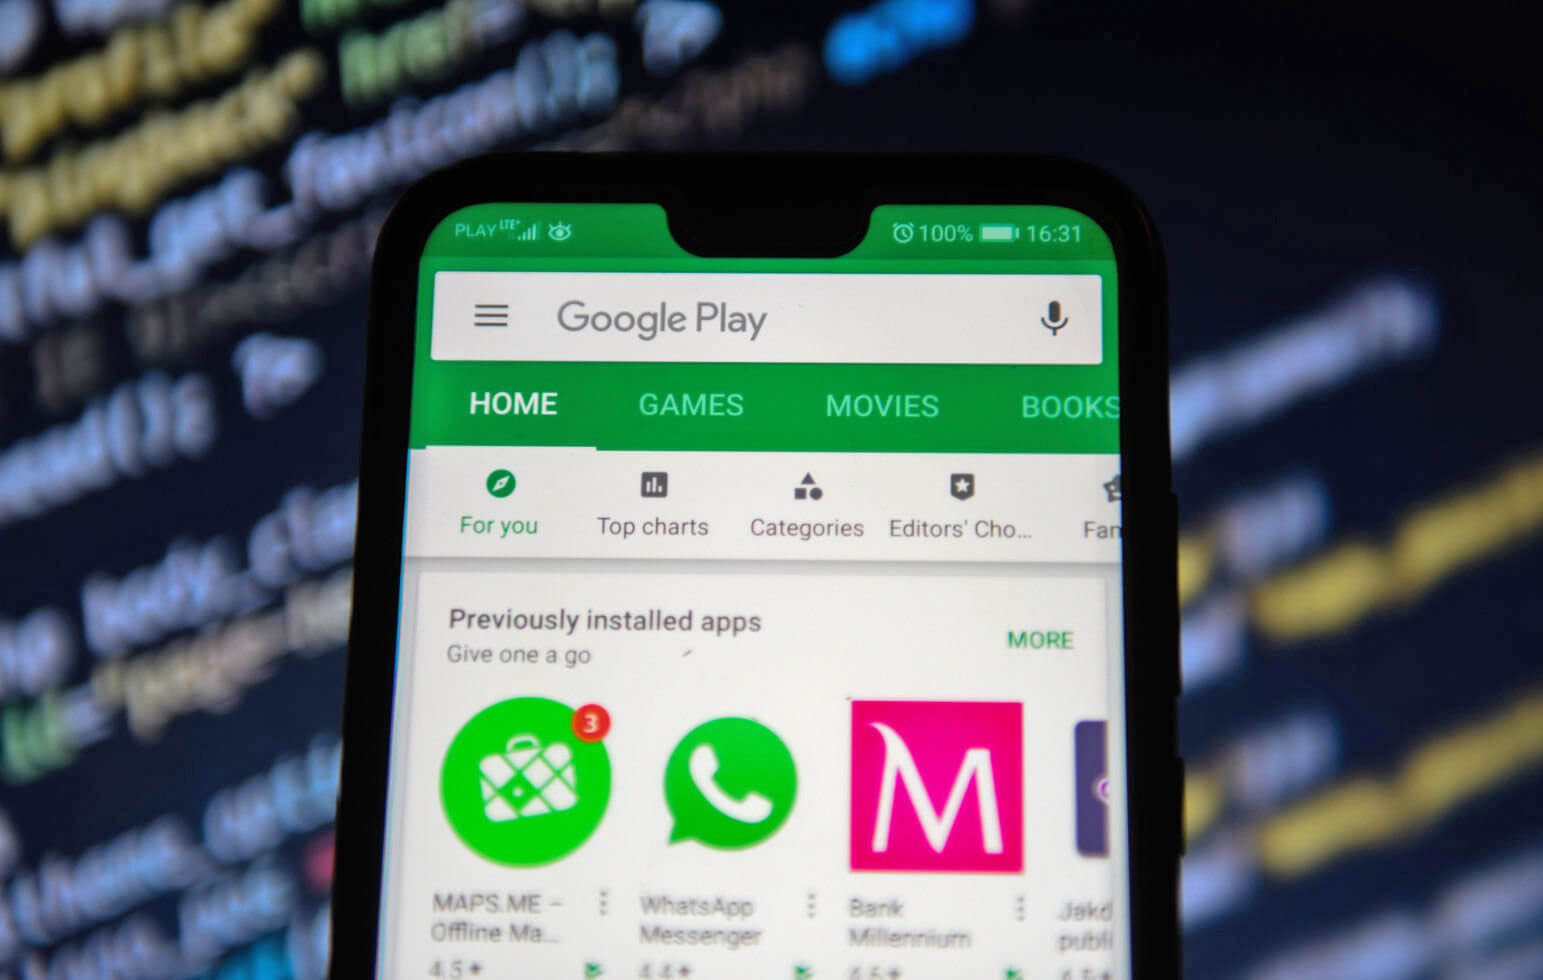 Play Store on Android phone